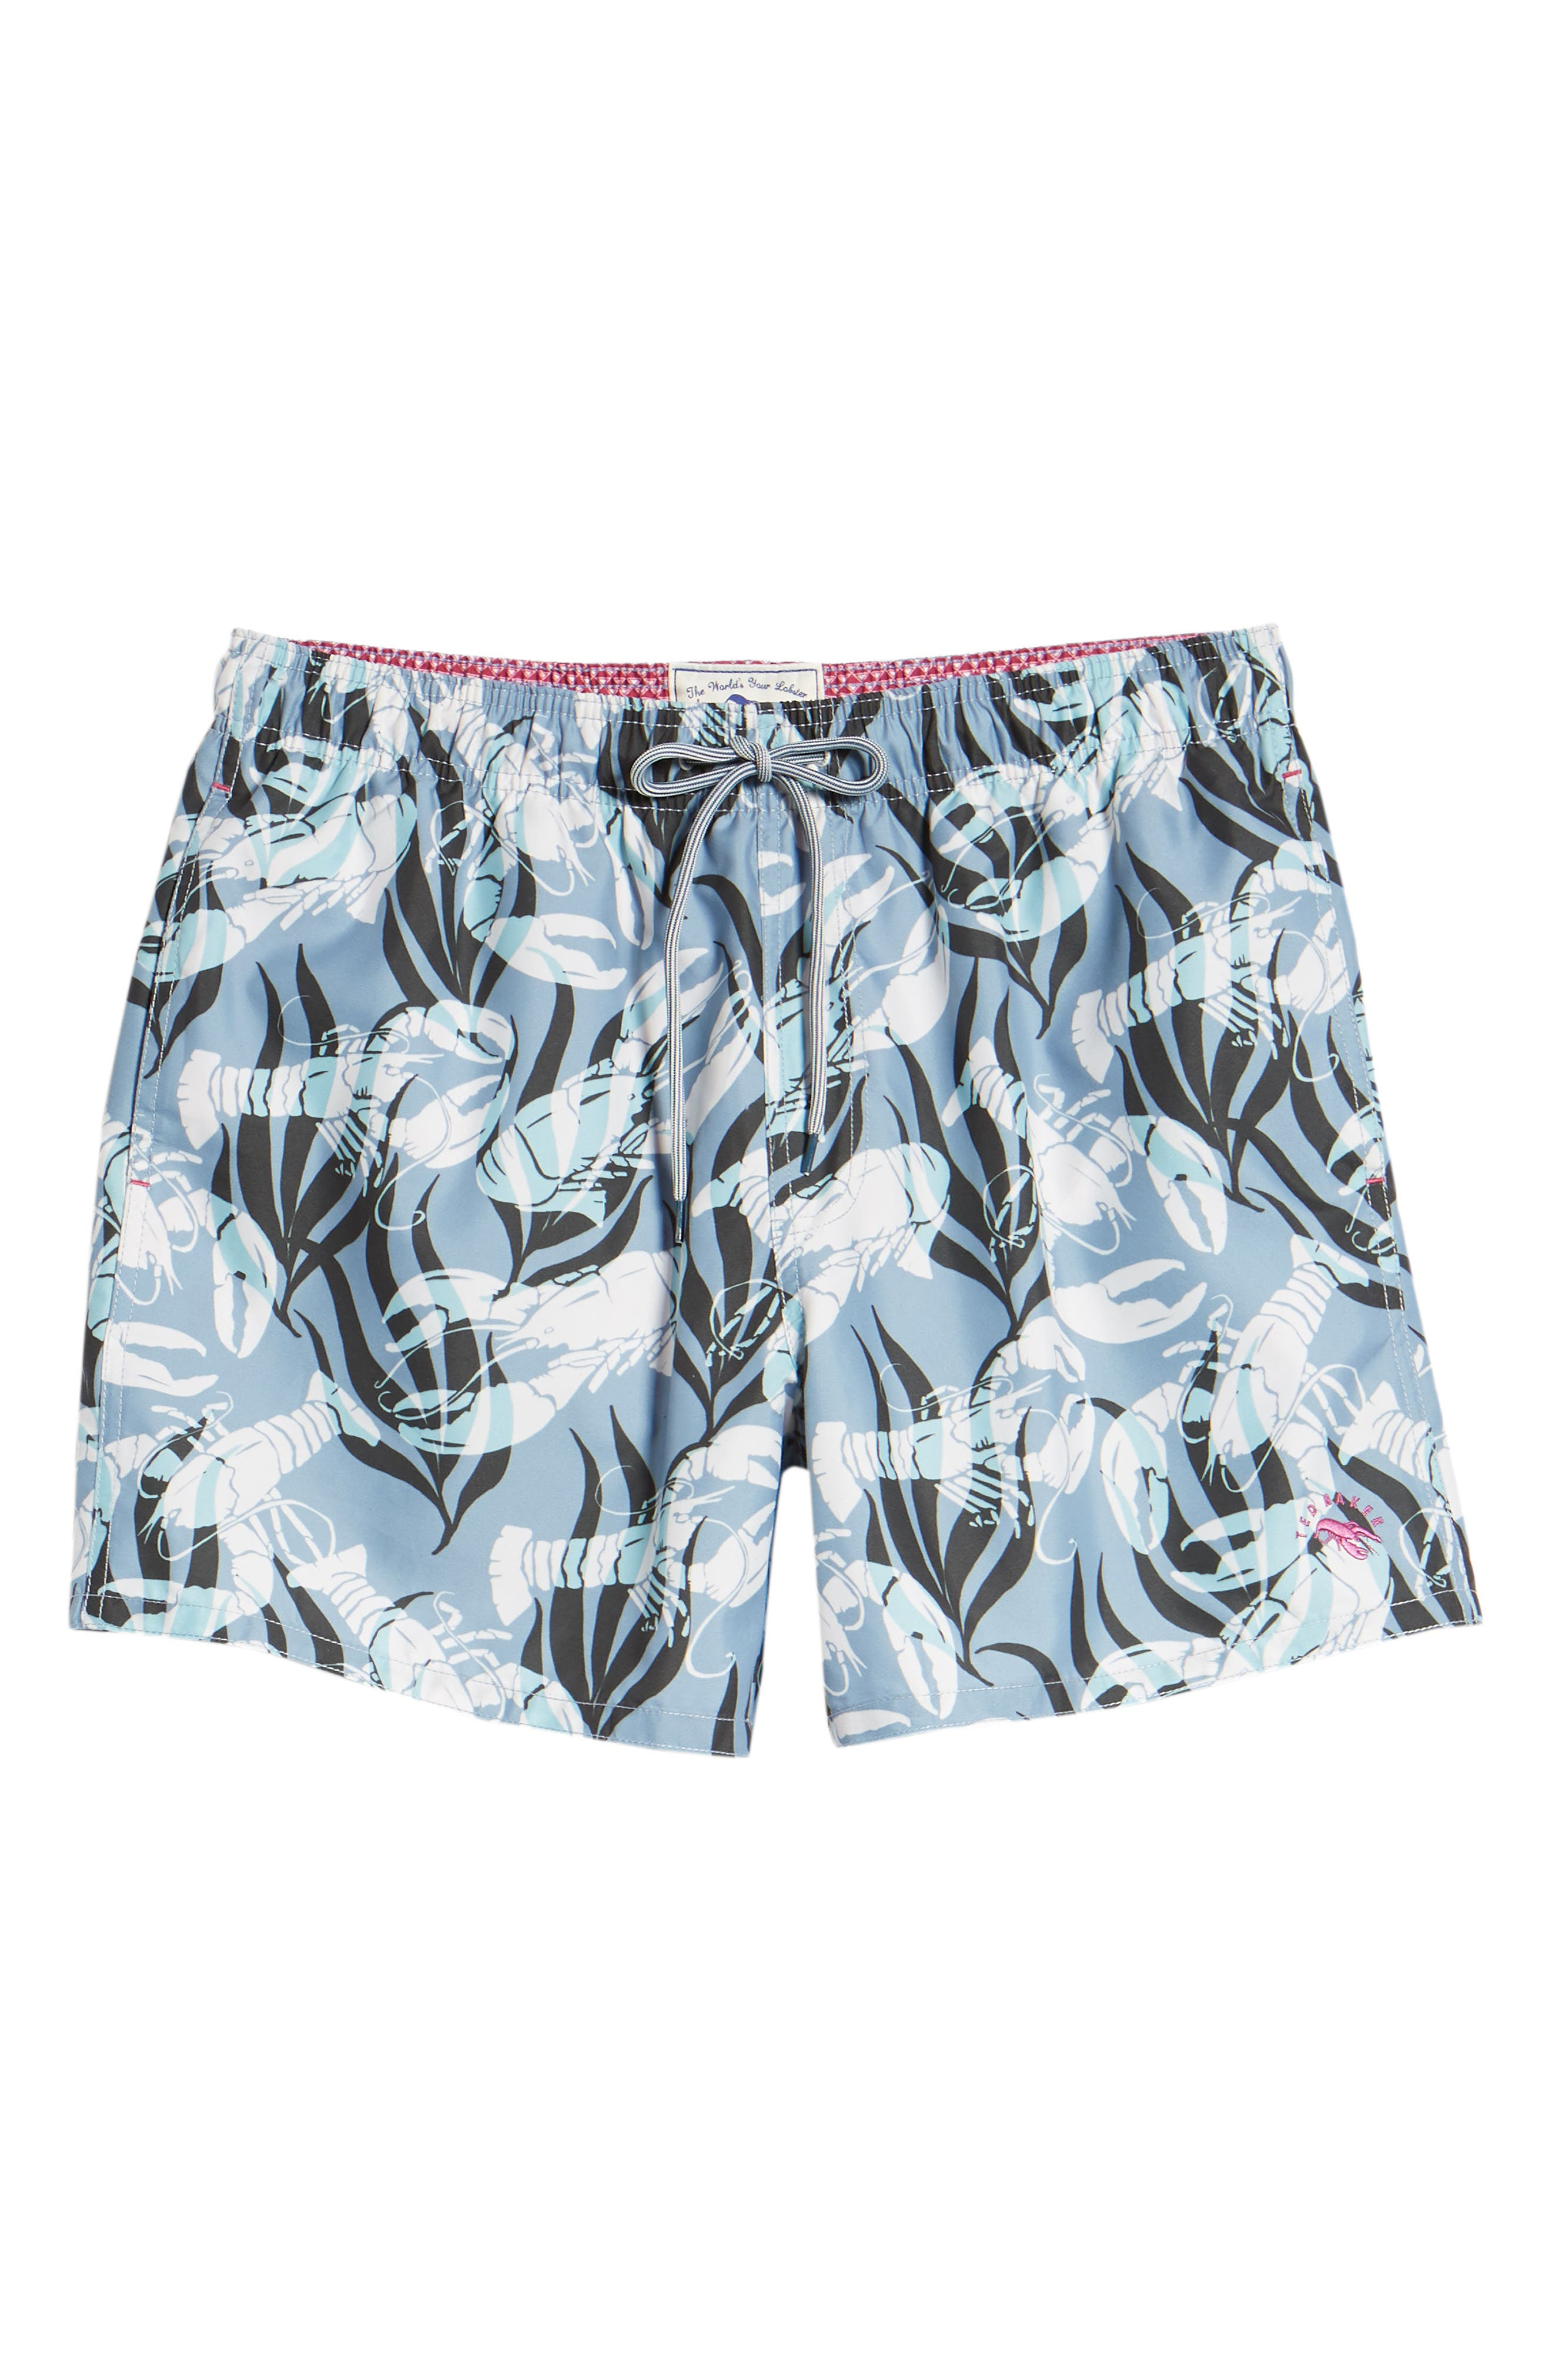 Yalow Slim Fit Lobster Swim Trunks,                             Alternate thumbnail 6, color,                             BLUE